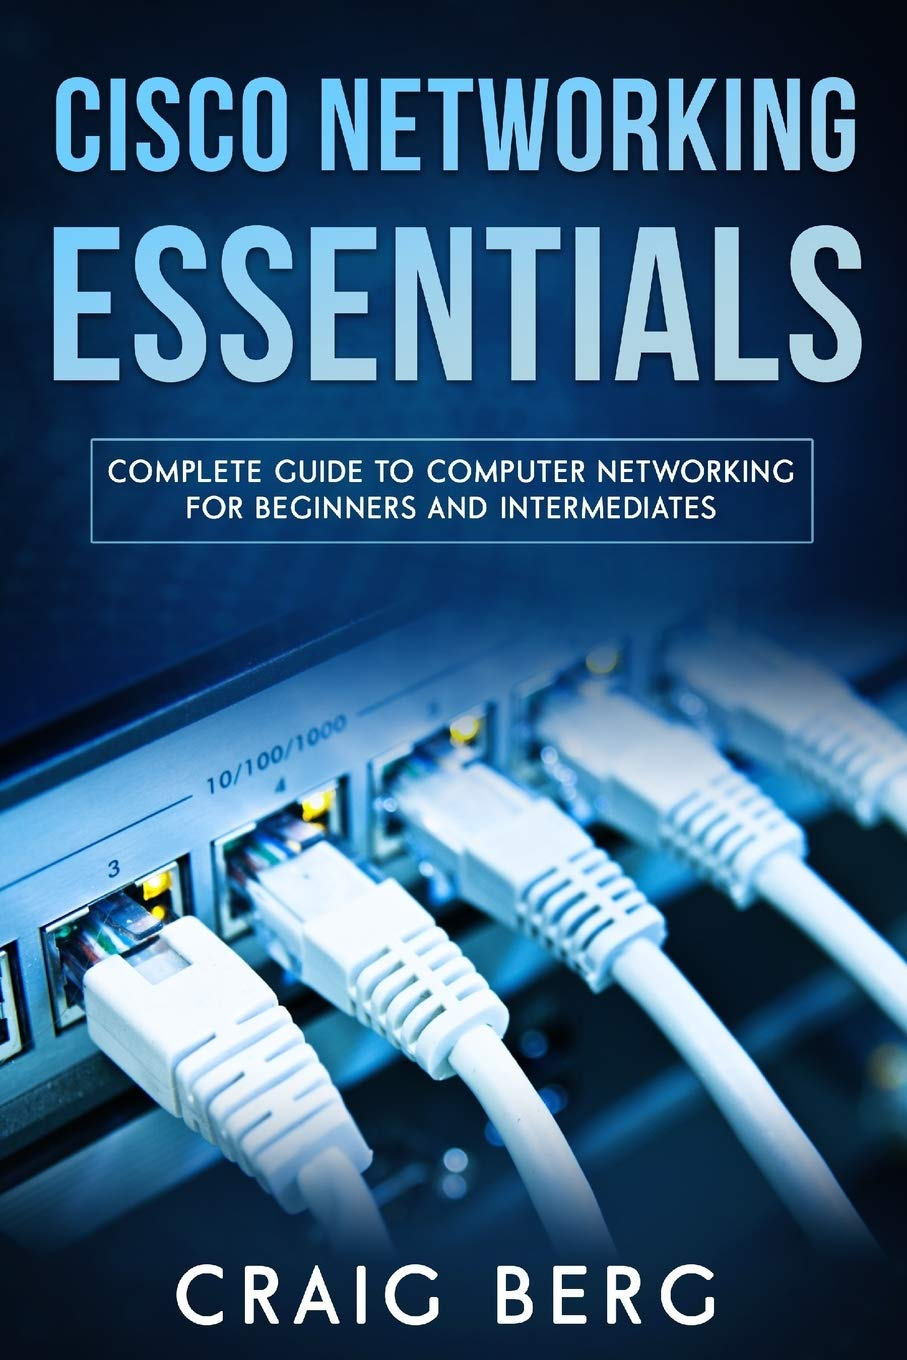 Cisco Networking Essentials: Complete Guide To Computer Networking For Beginners And Intermediates (Code tutorials)